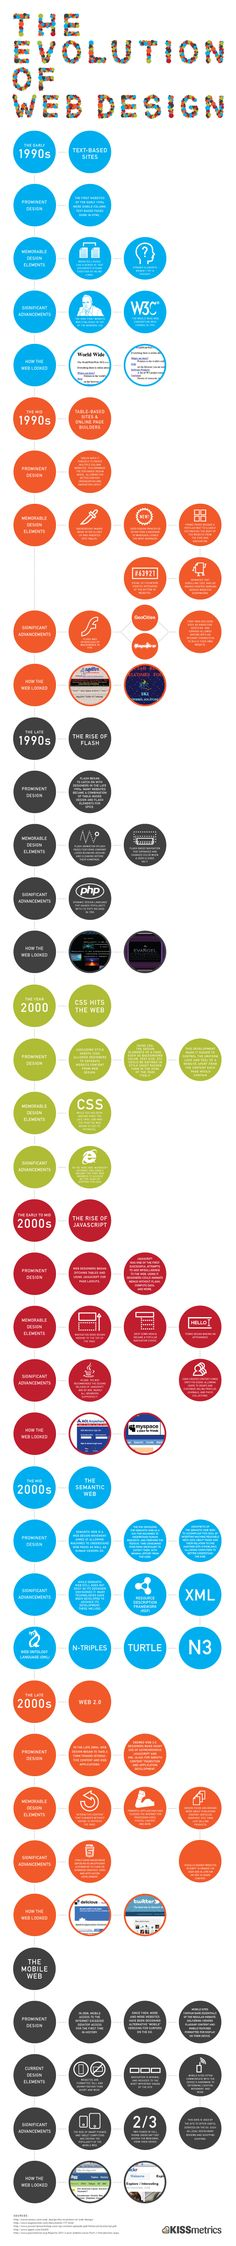 The Evolution of Webdesign #webdesign #flash #css #javasript #html5 #mobile